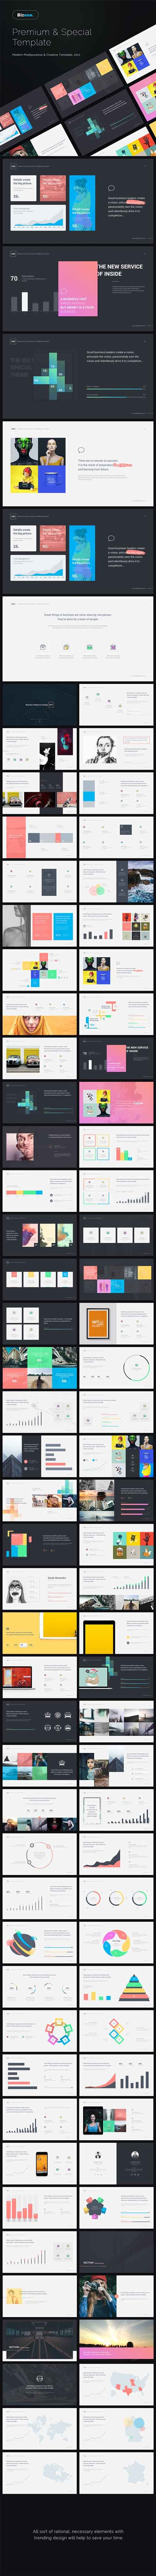 BizOne Creative & Multipurpose Powerpoint Template 19899314